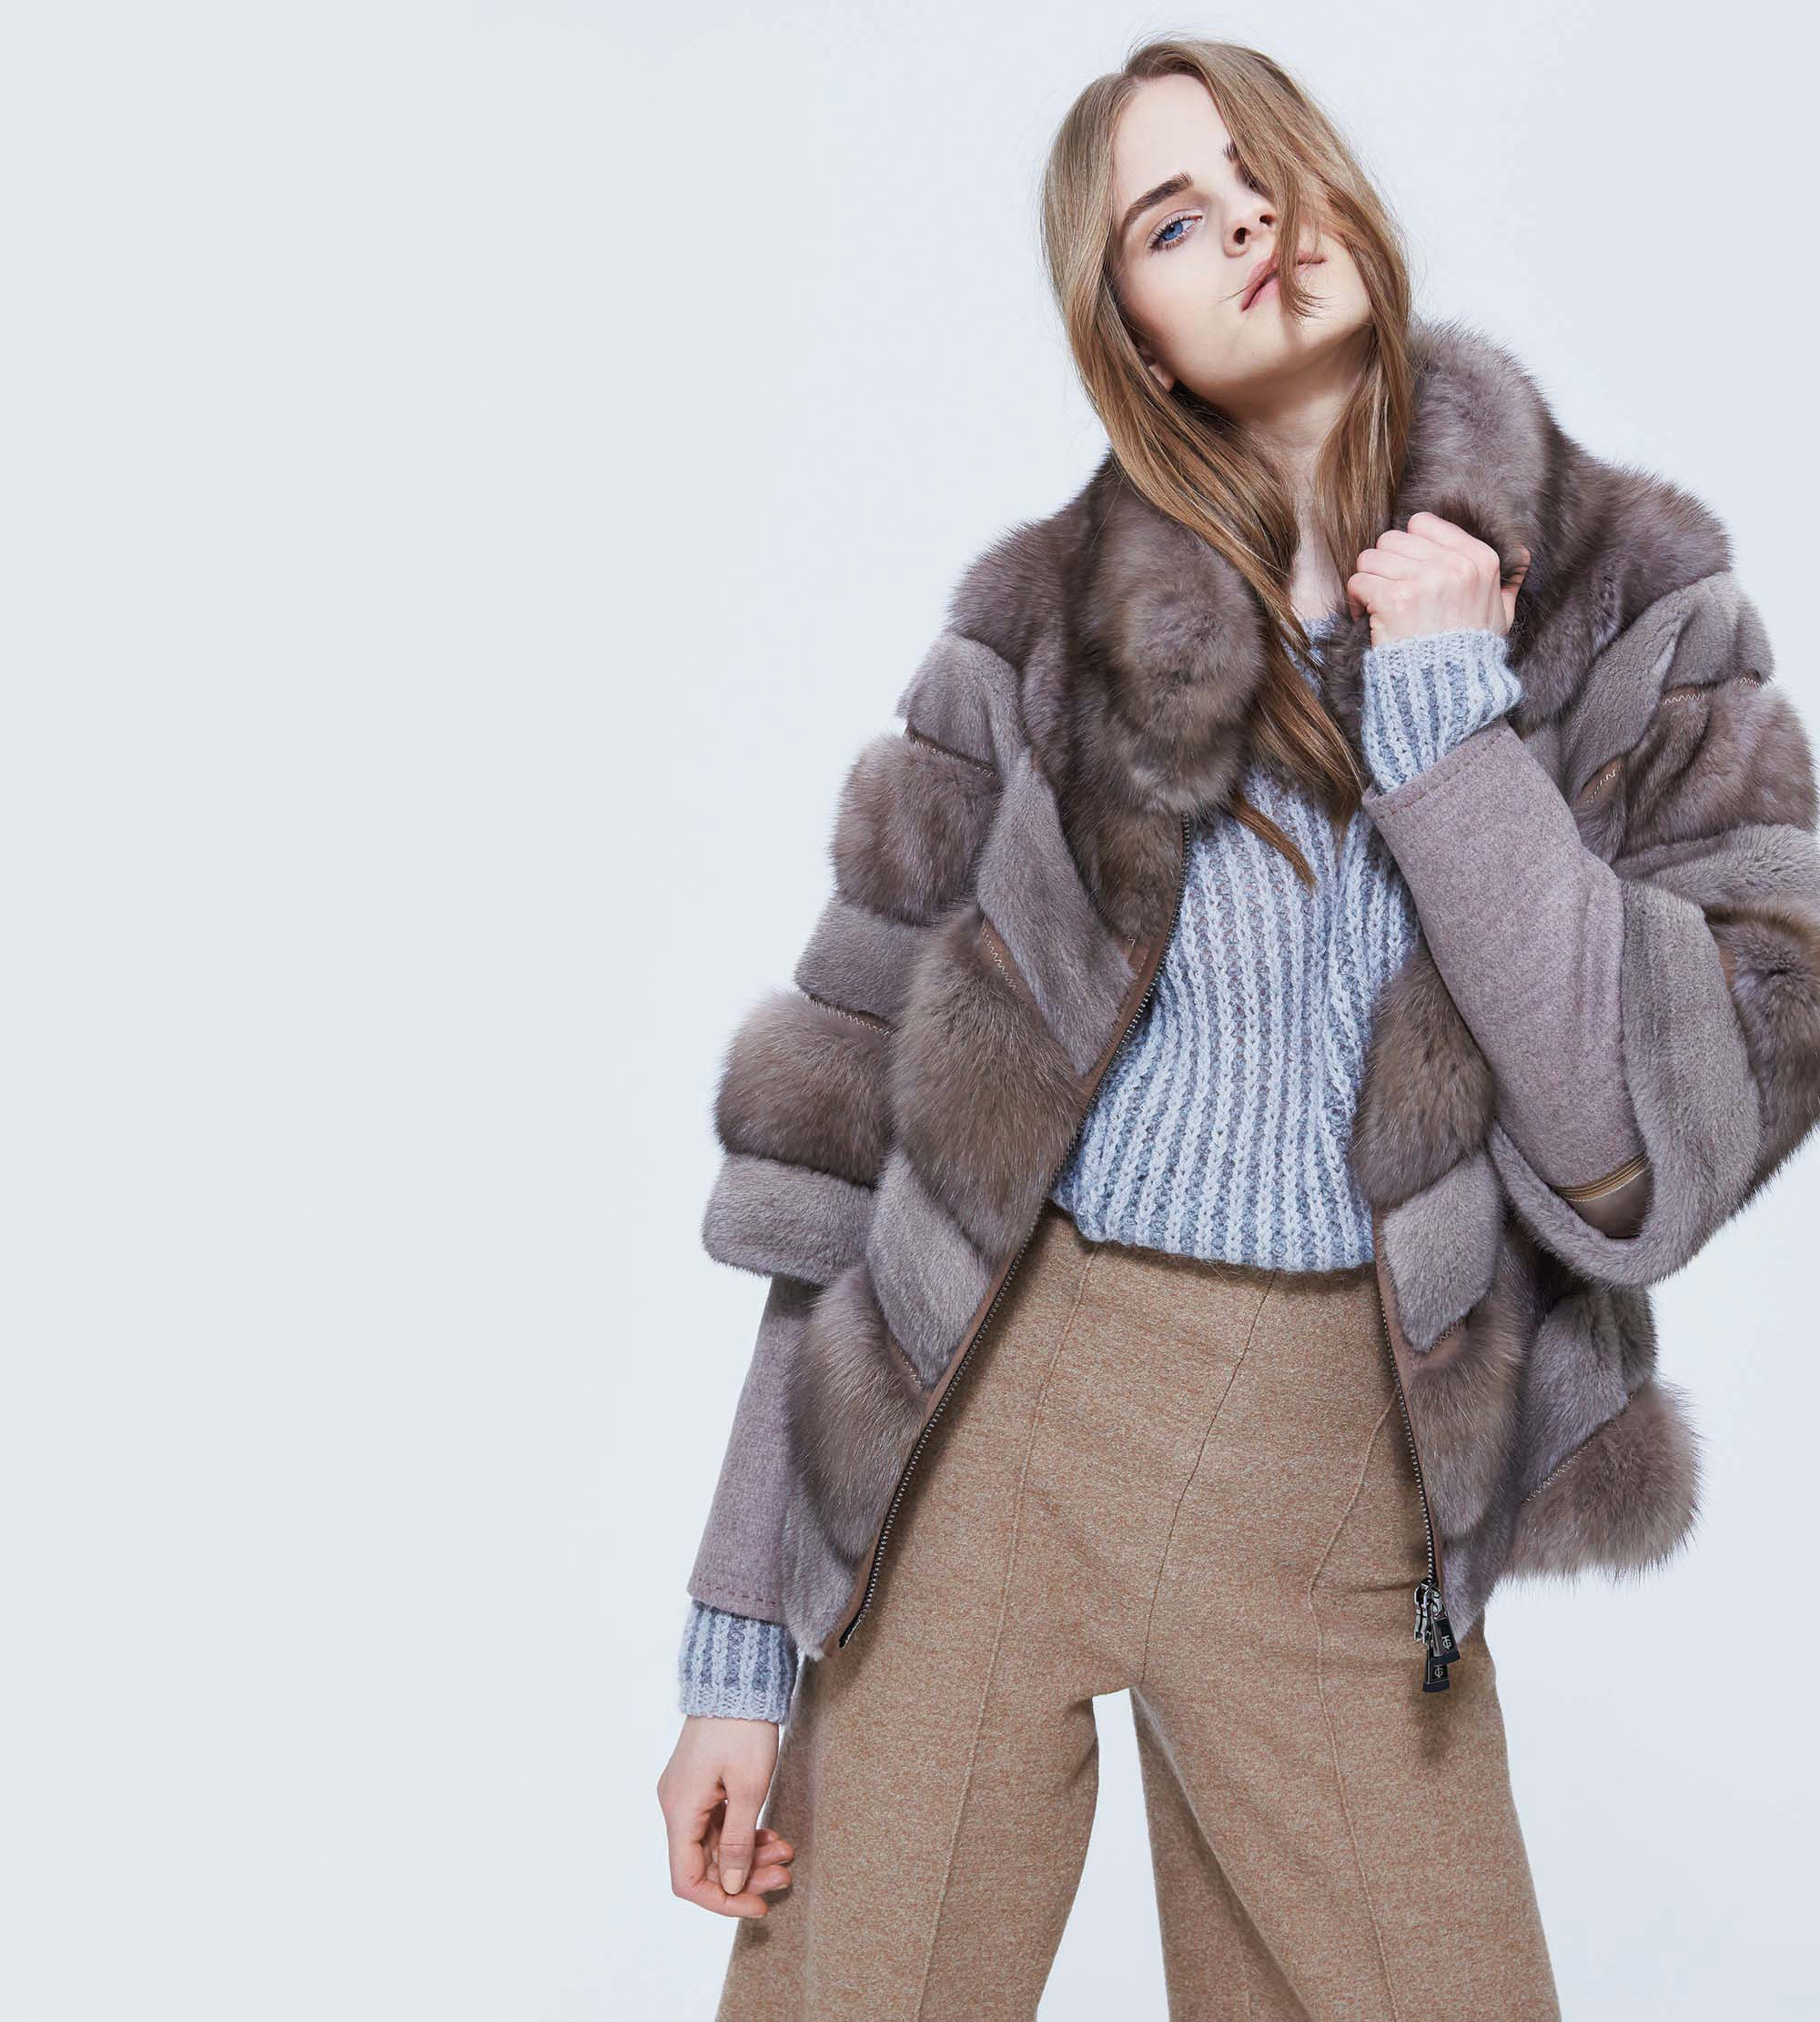 pat-flesher-furs-coat-grey-taupe-stripes.jpg